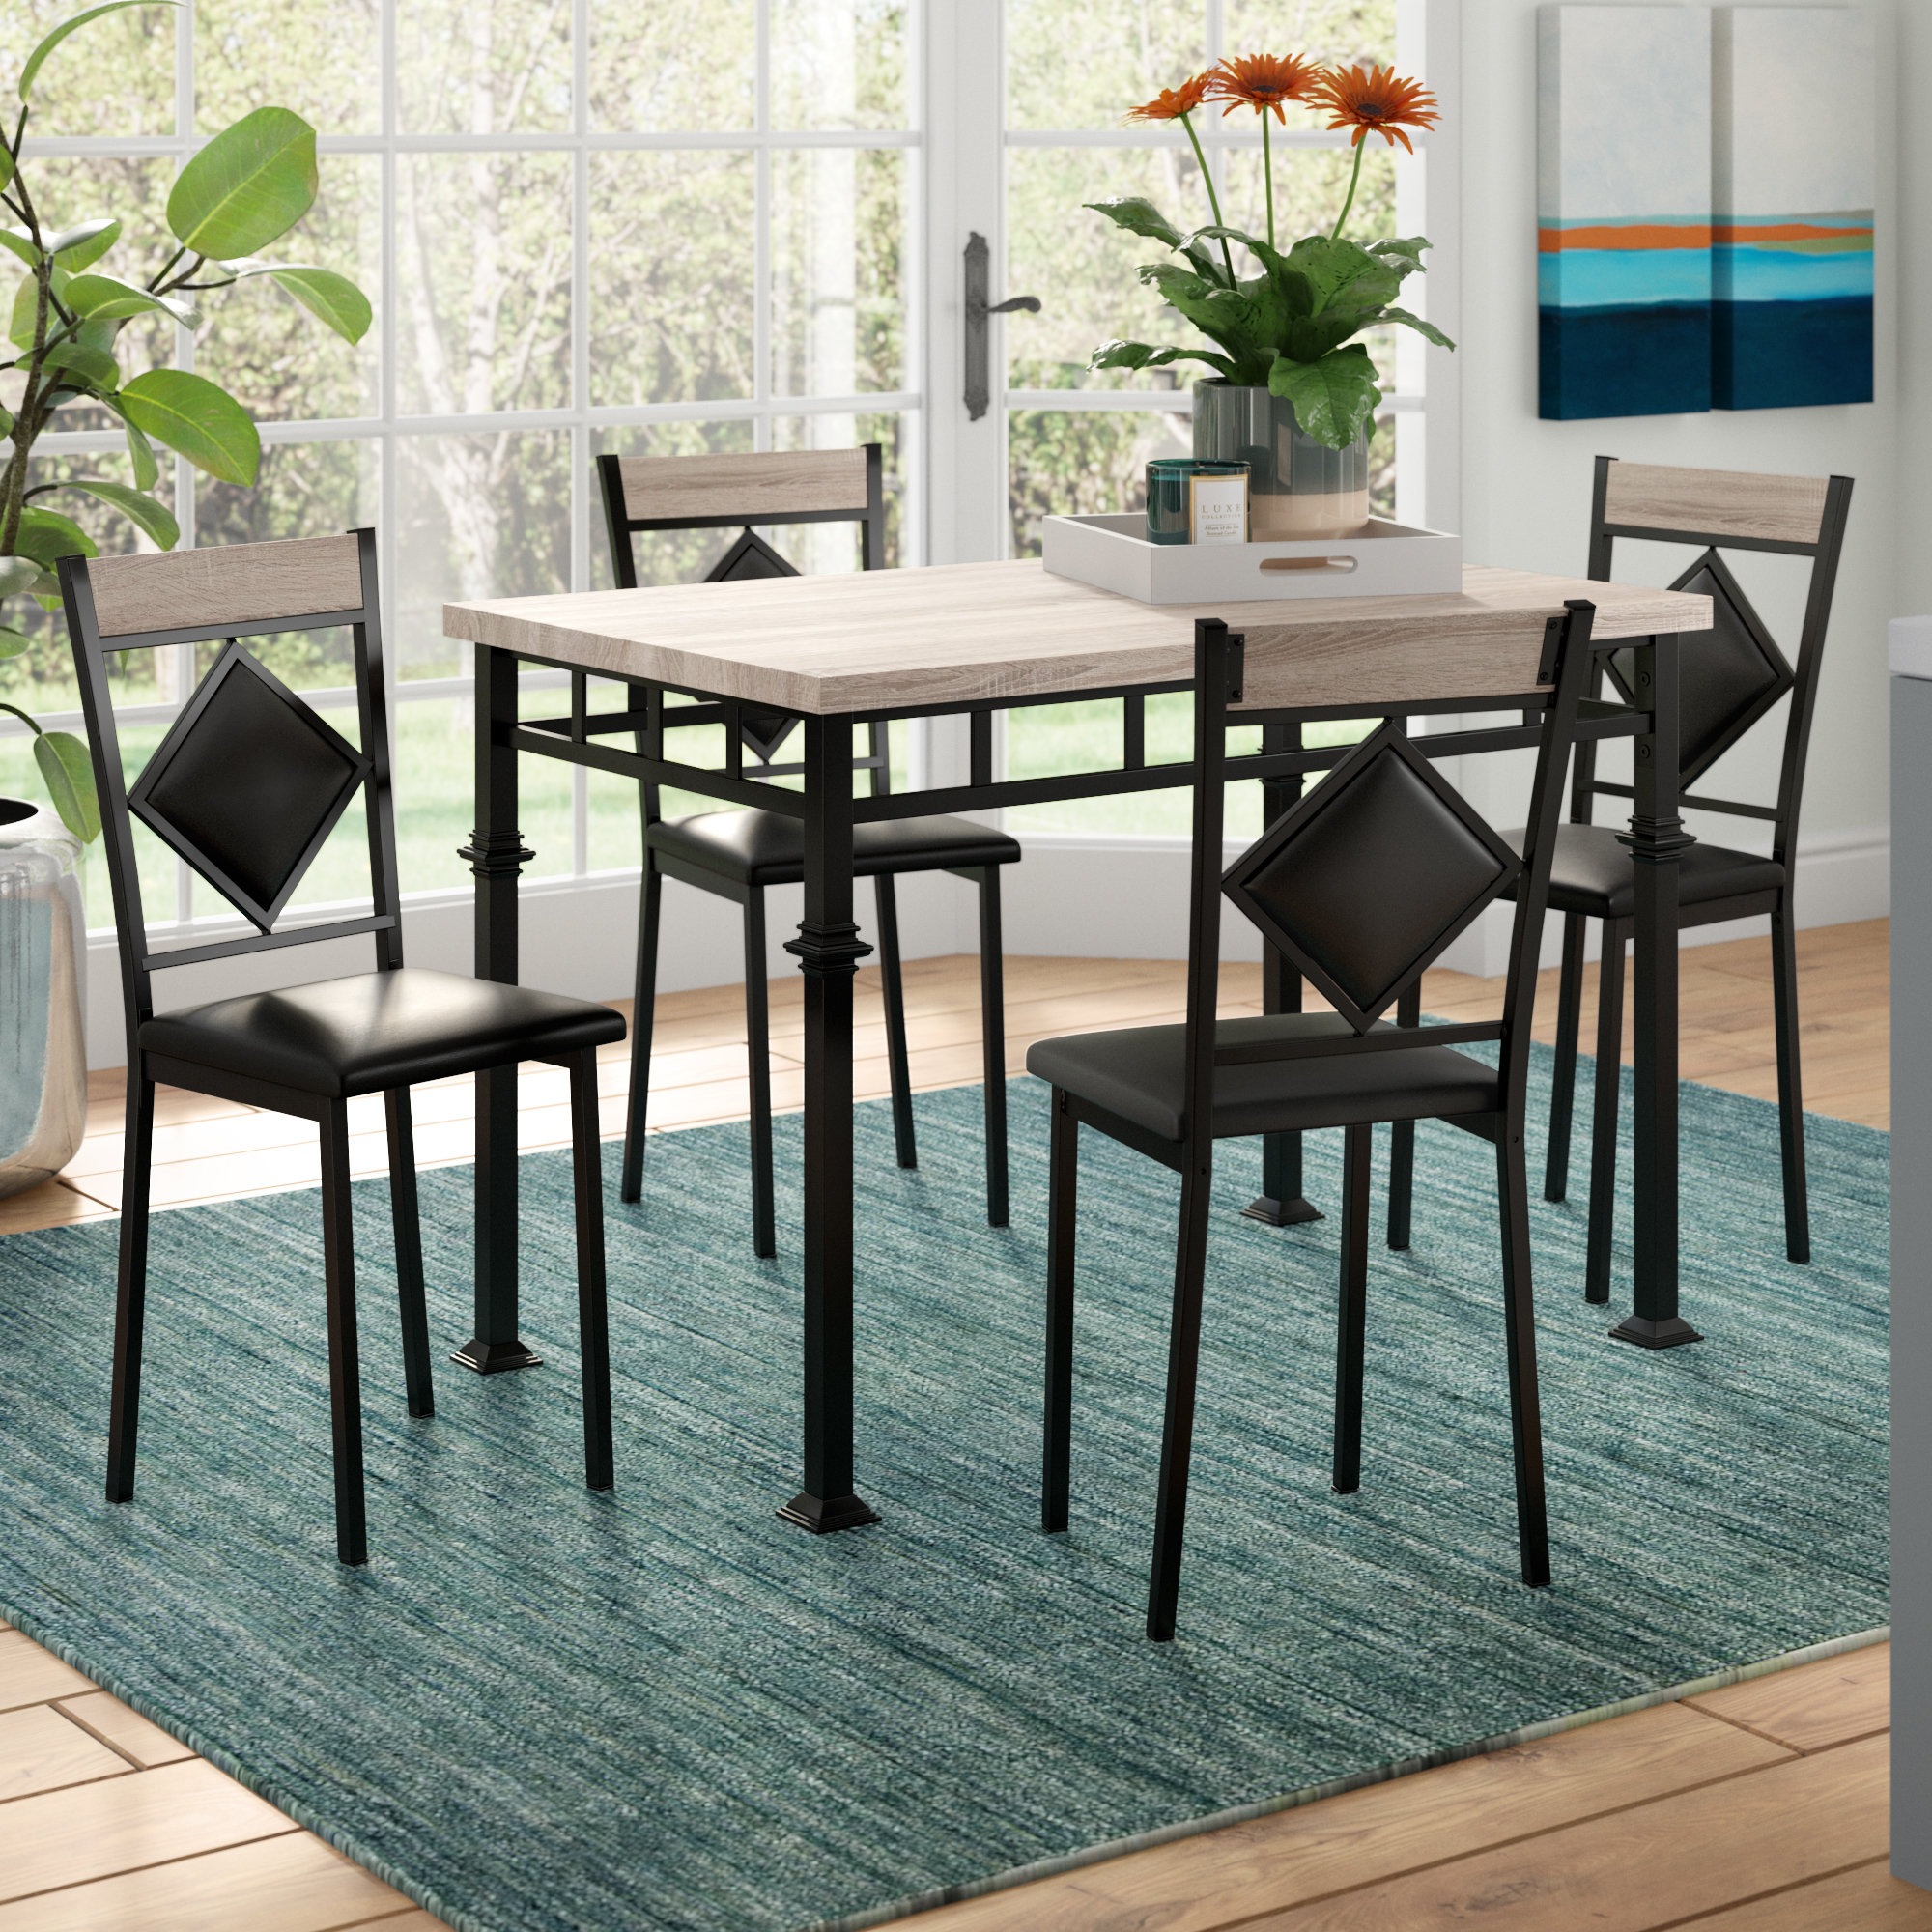 Wayfair Within Autberry 5 Piece Dining Sets (#18 of 20)